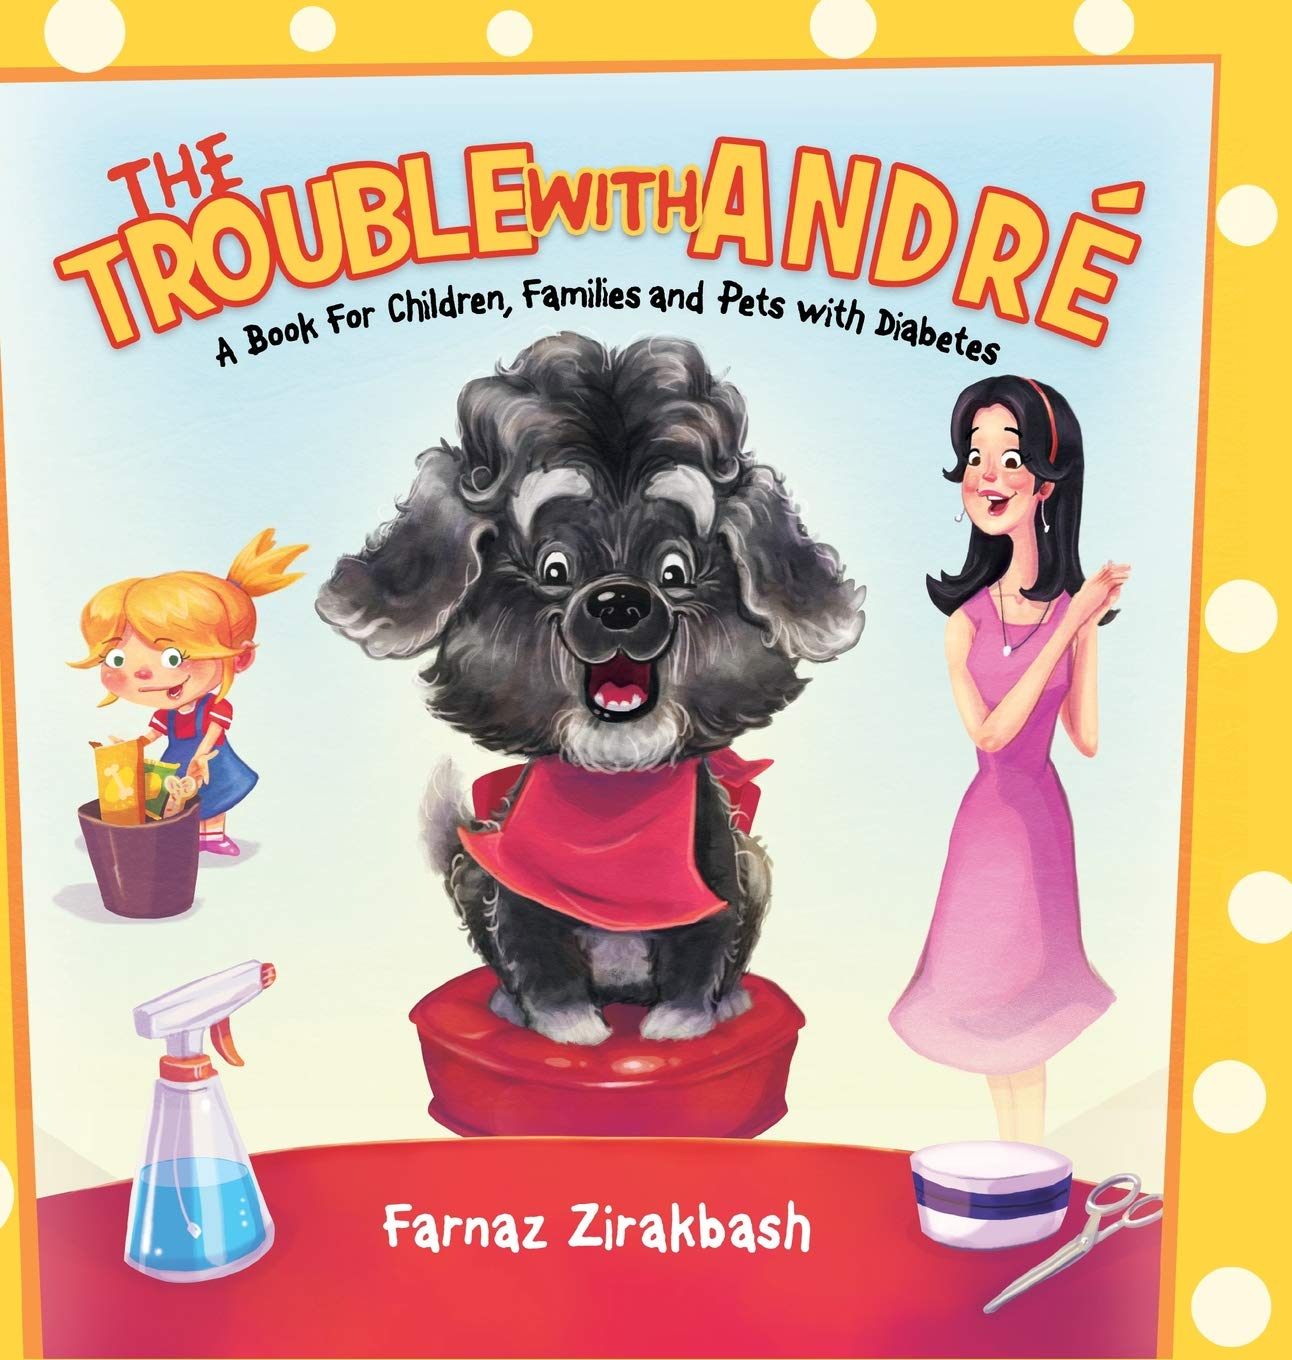 The Trouble with André: A book for children, families and pets with